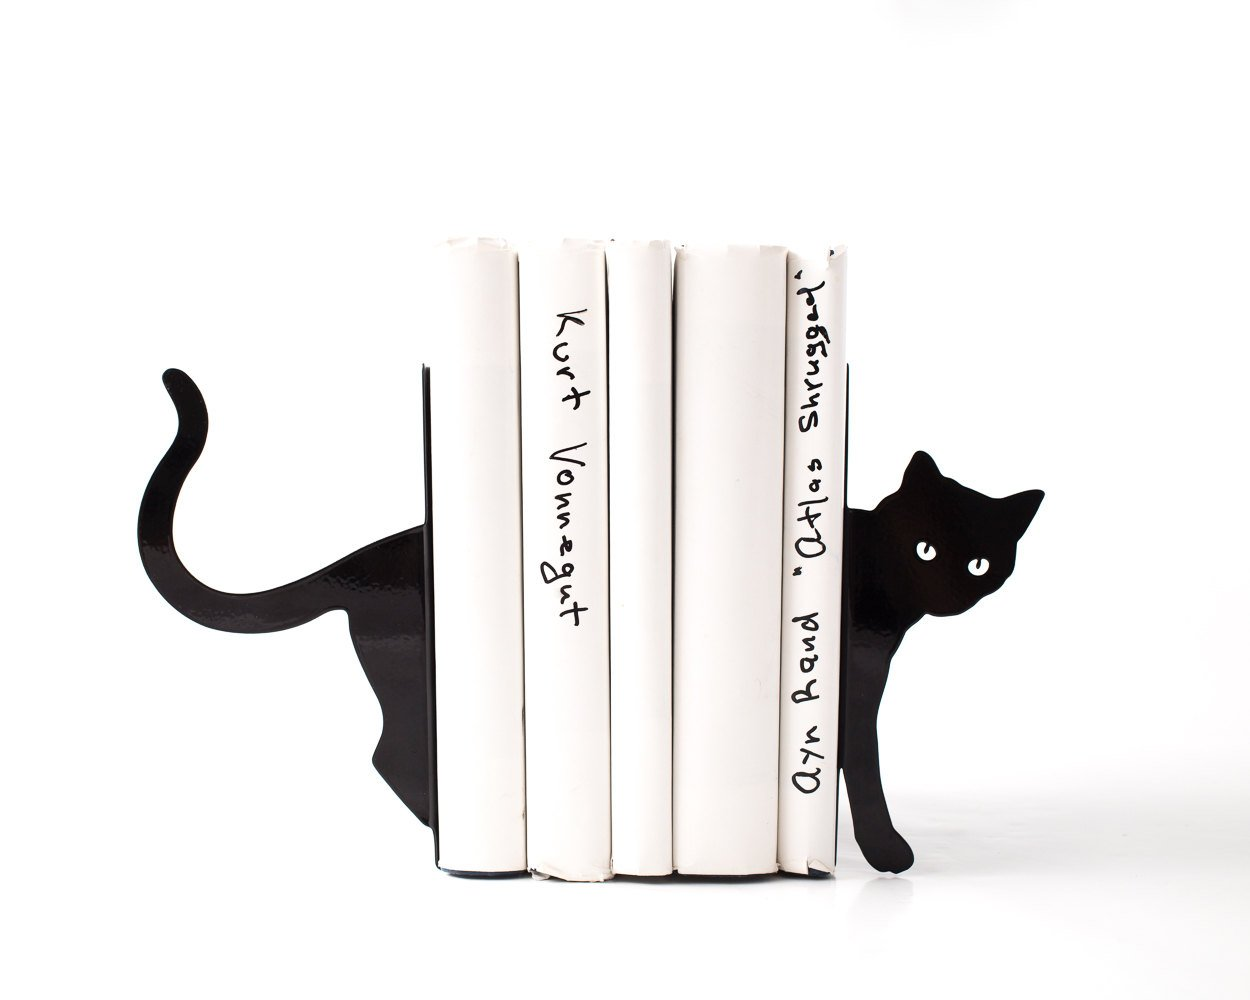 Decorative Bookends - Cat and books - functional decor modern home // decorative bookends for cat lover // book lover //  FREE SHIPPING - Design Atelier Article